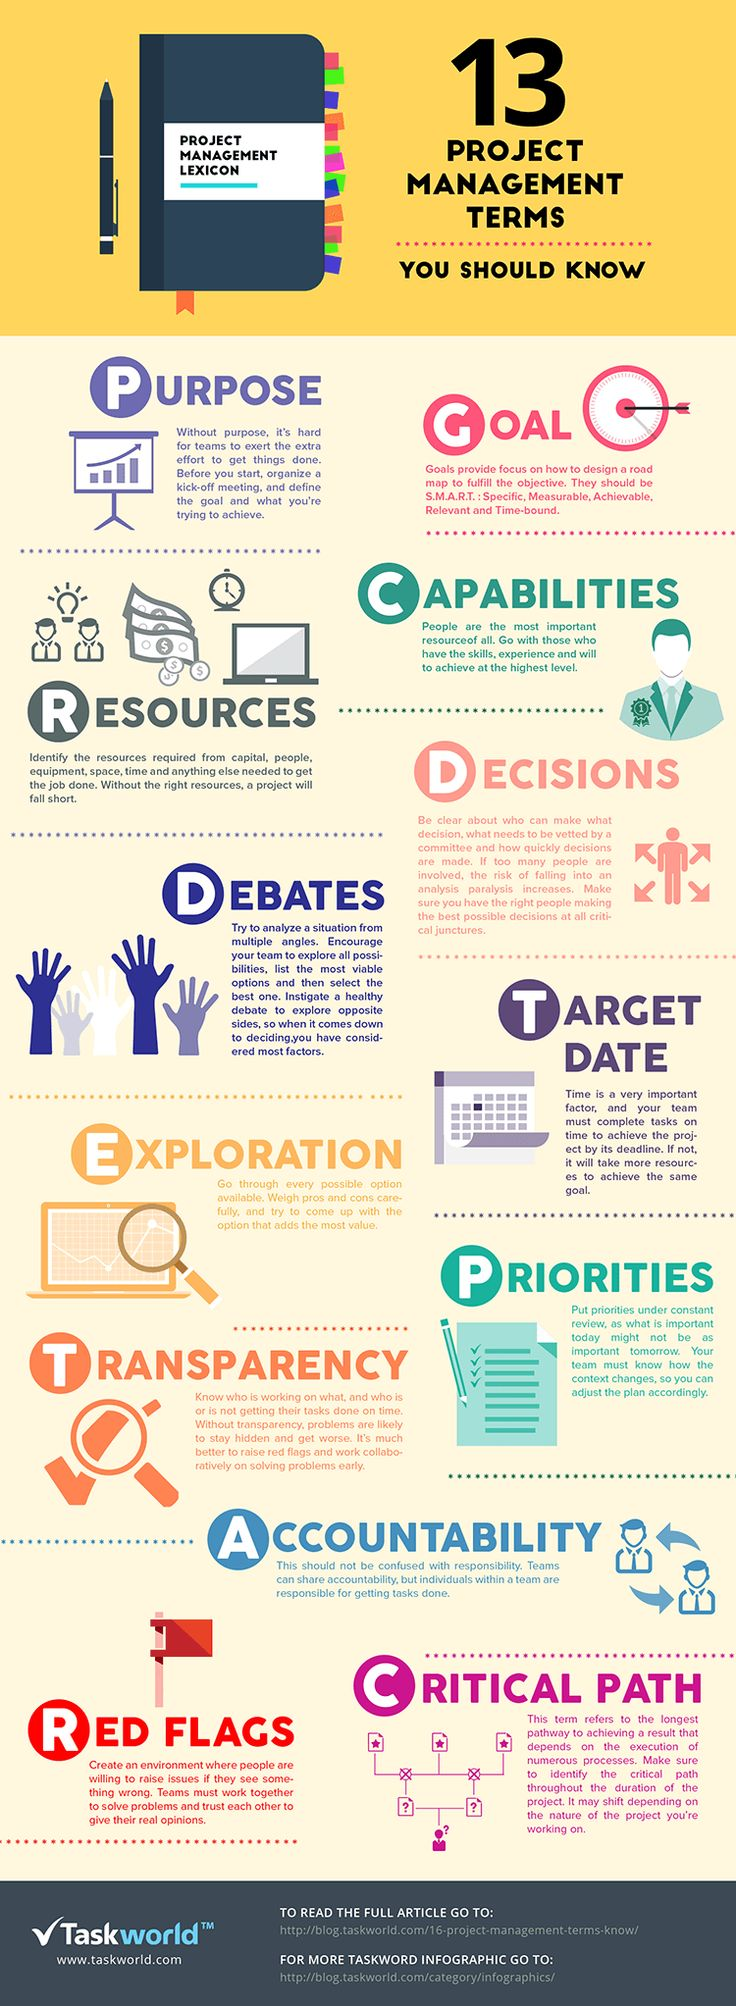 13 Project Management Terms You Should Know #infographic #ProjectManagement…